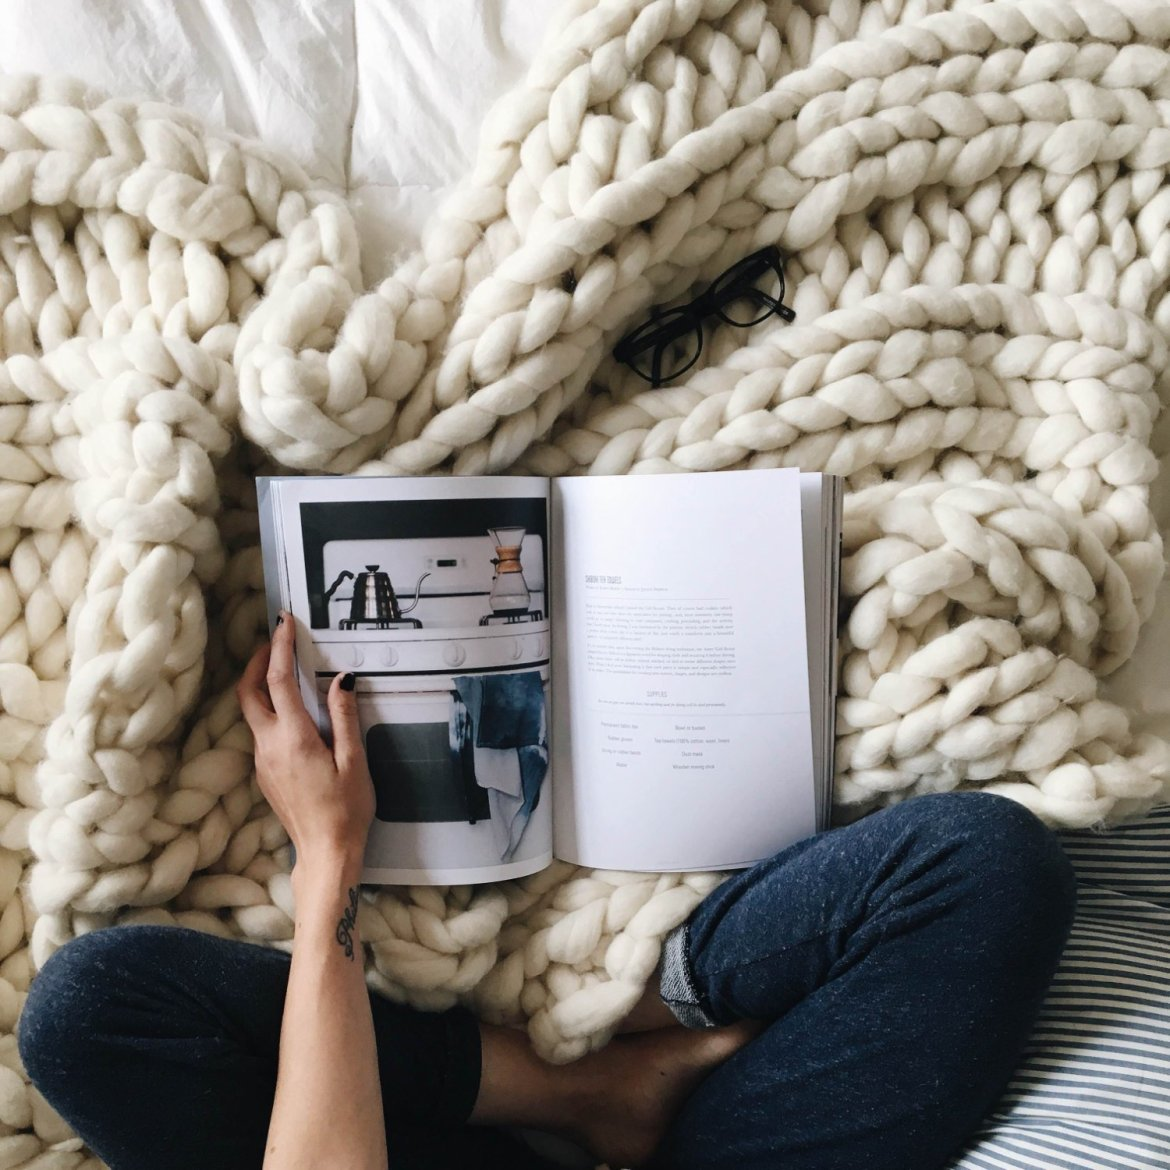 Chunky knit blanket to buy or DIY